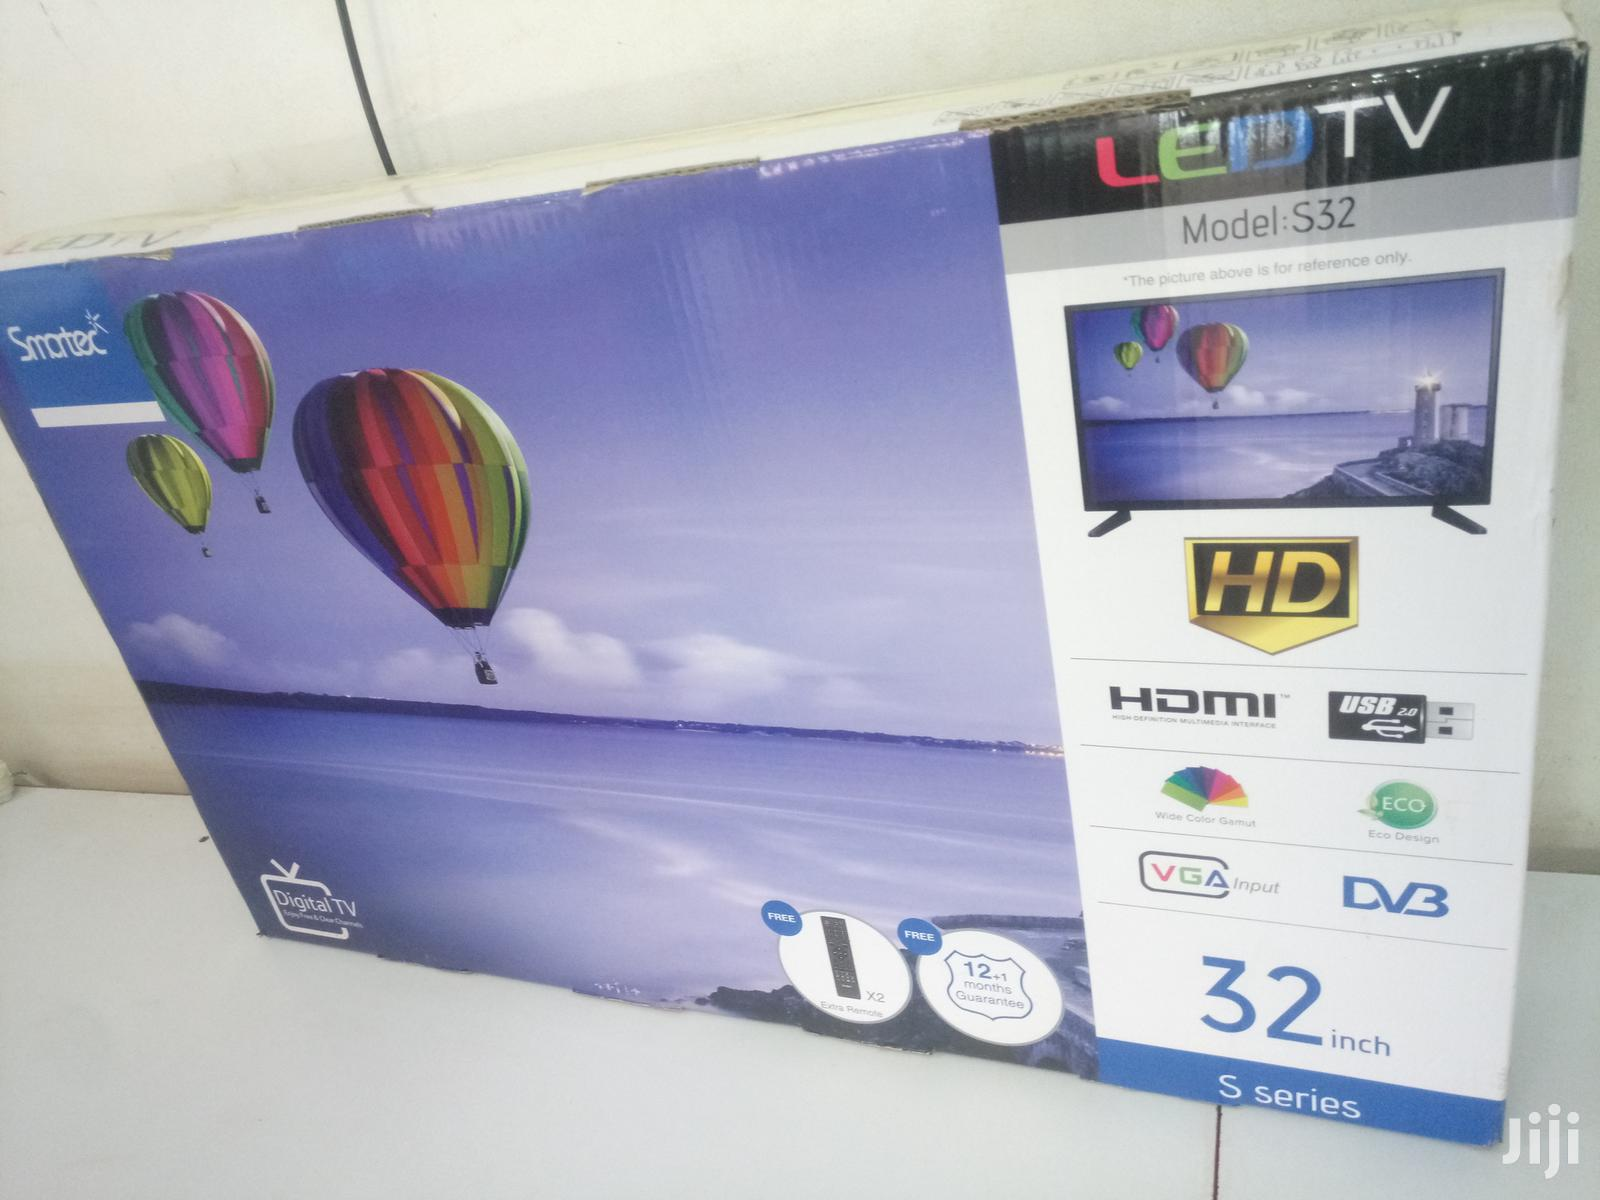 Smartec Flat Screen Digital TV 32 Inches